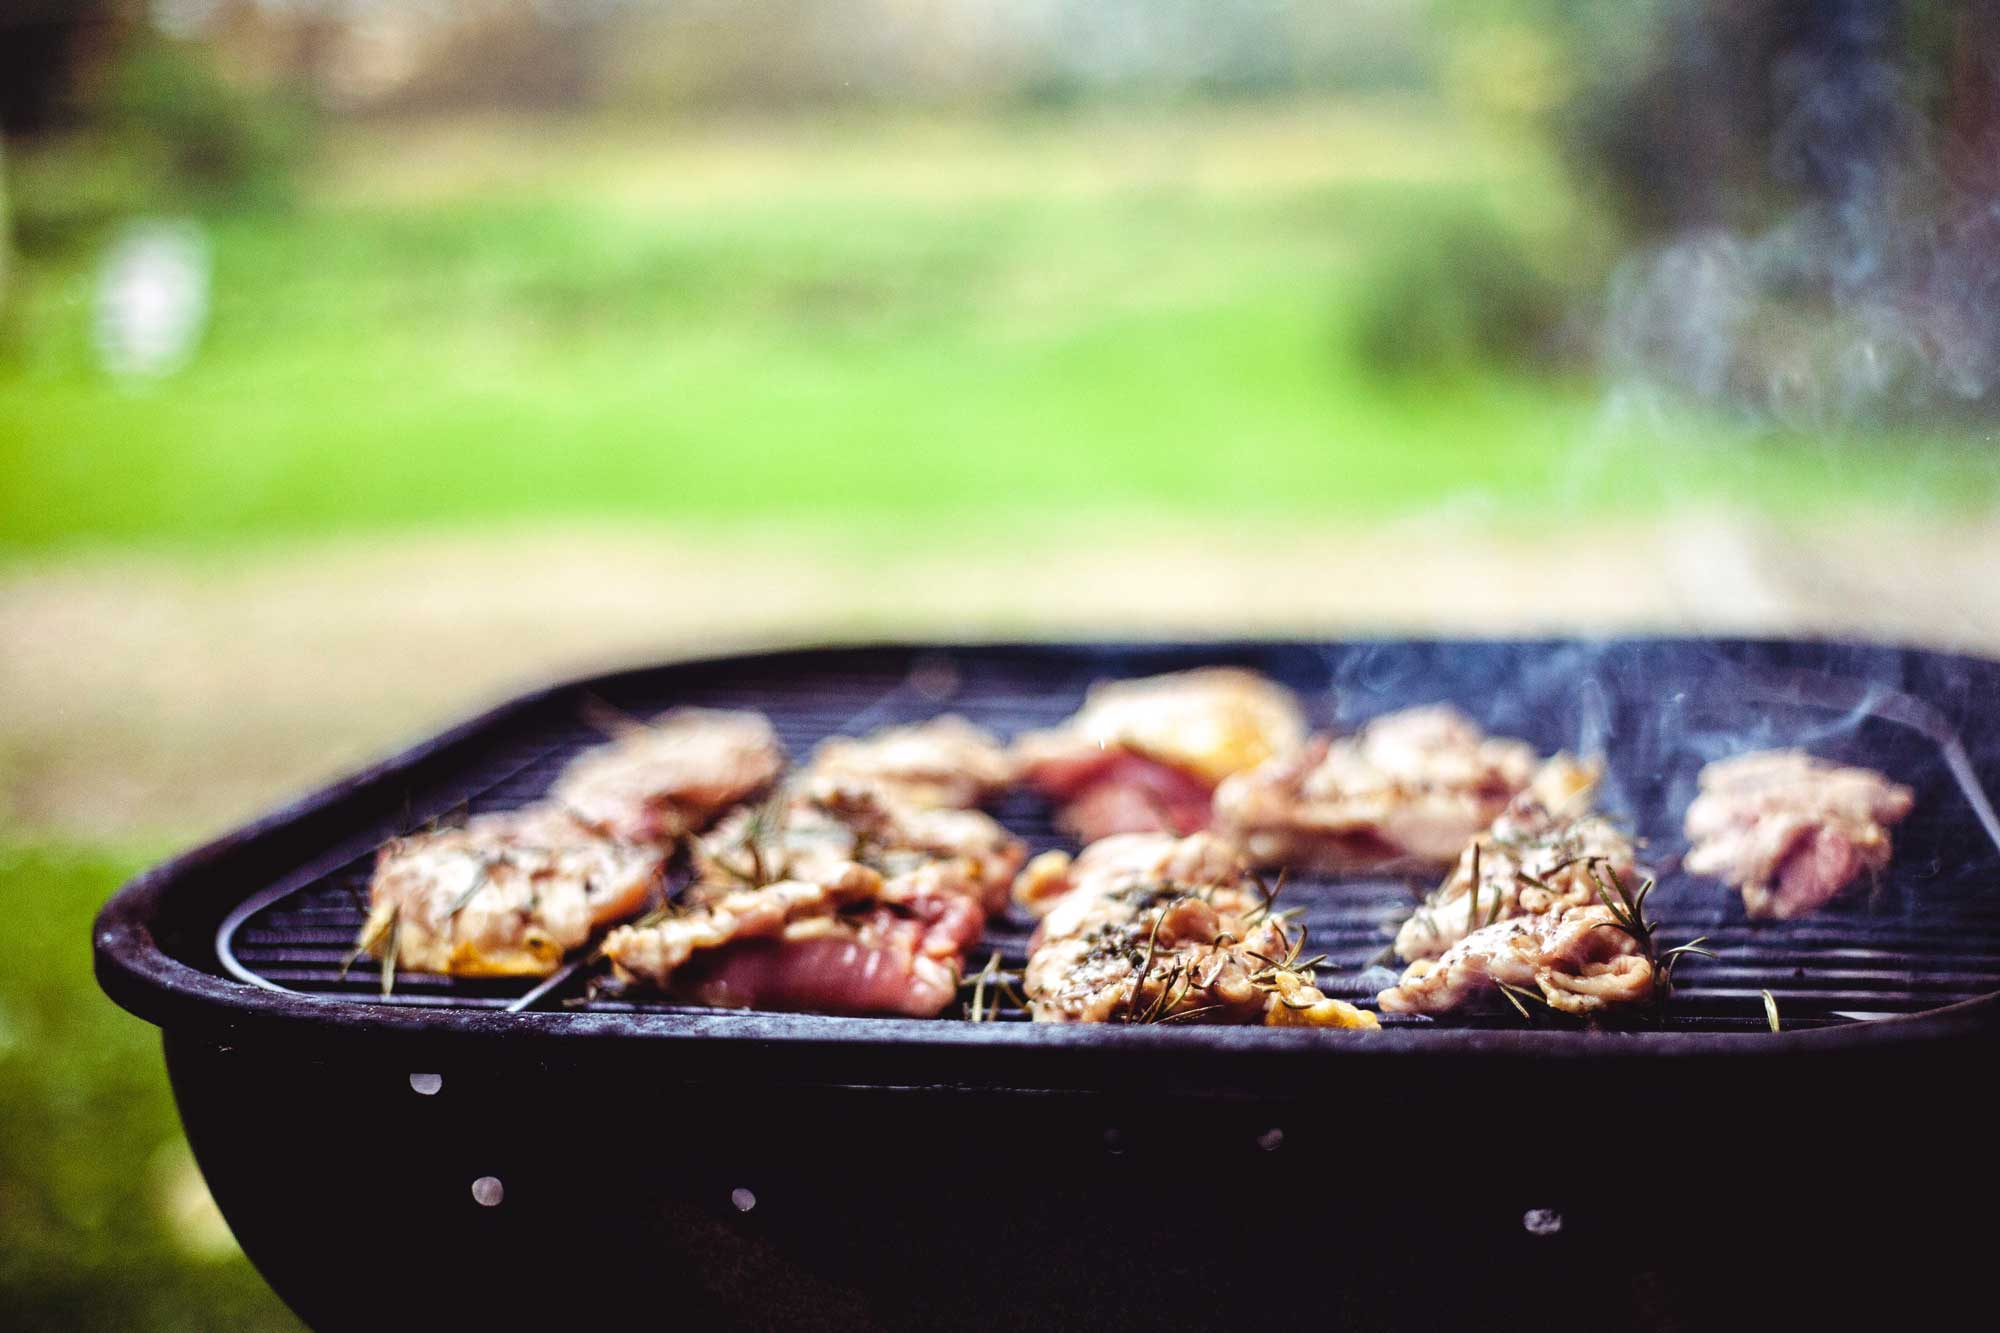 Steaming barbecue beef on an outdoor grill